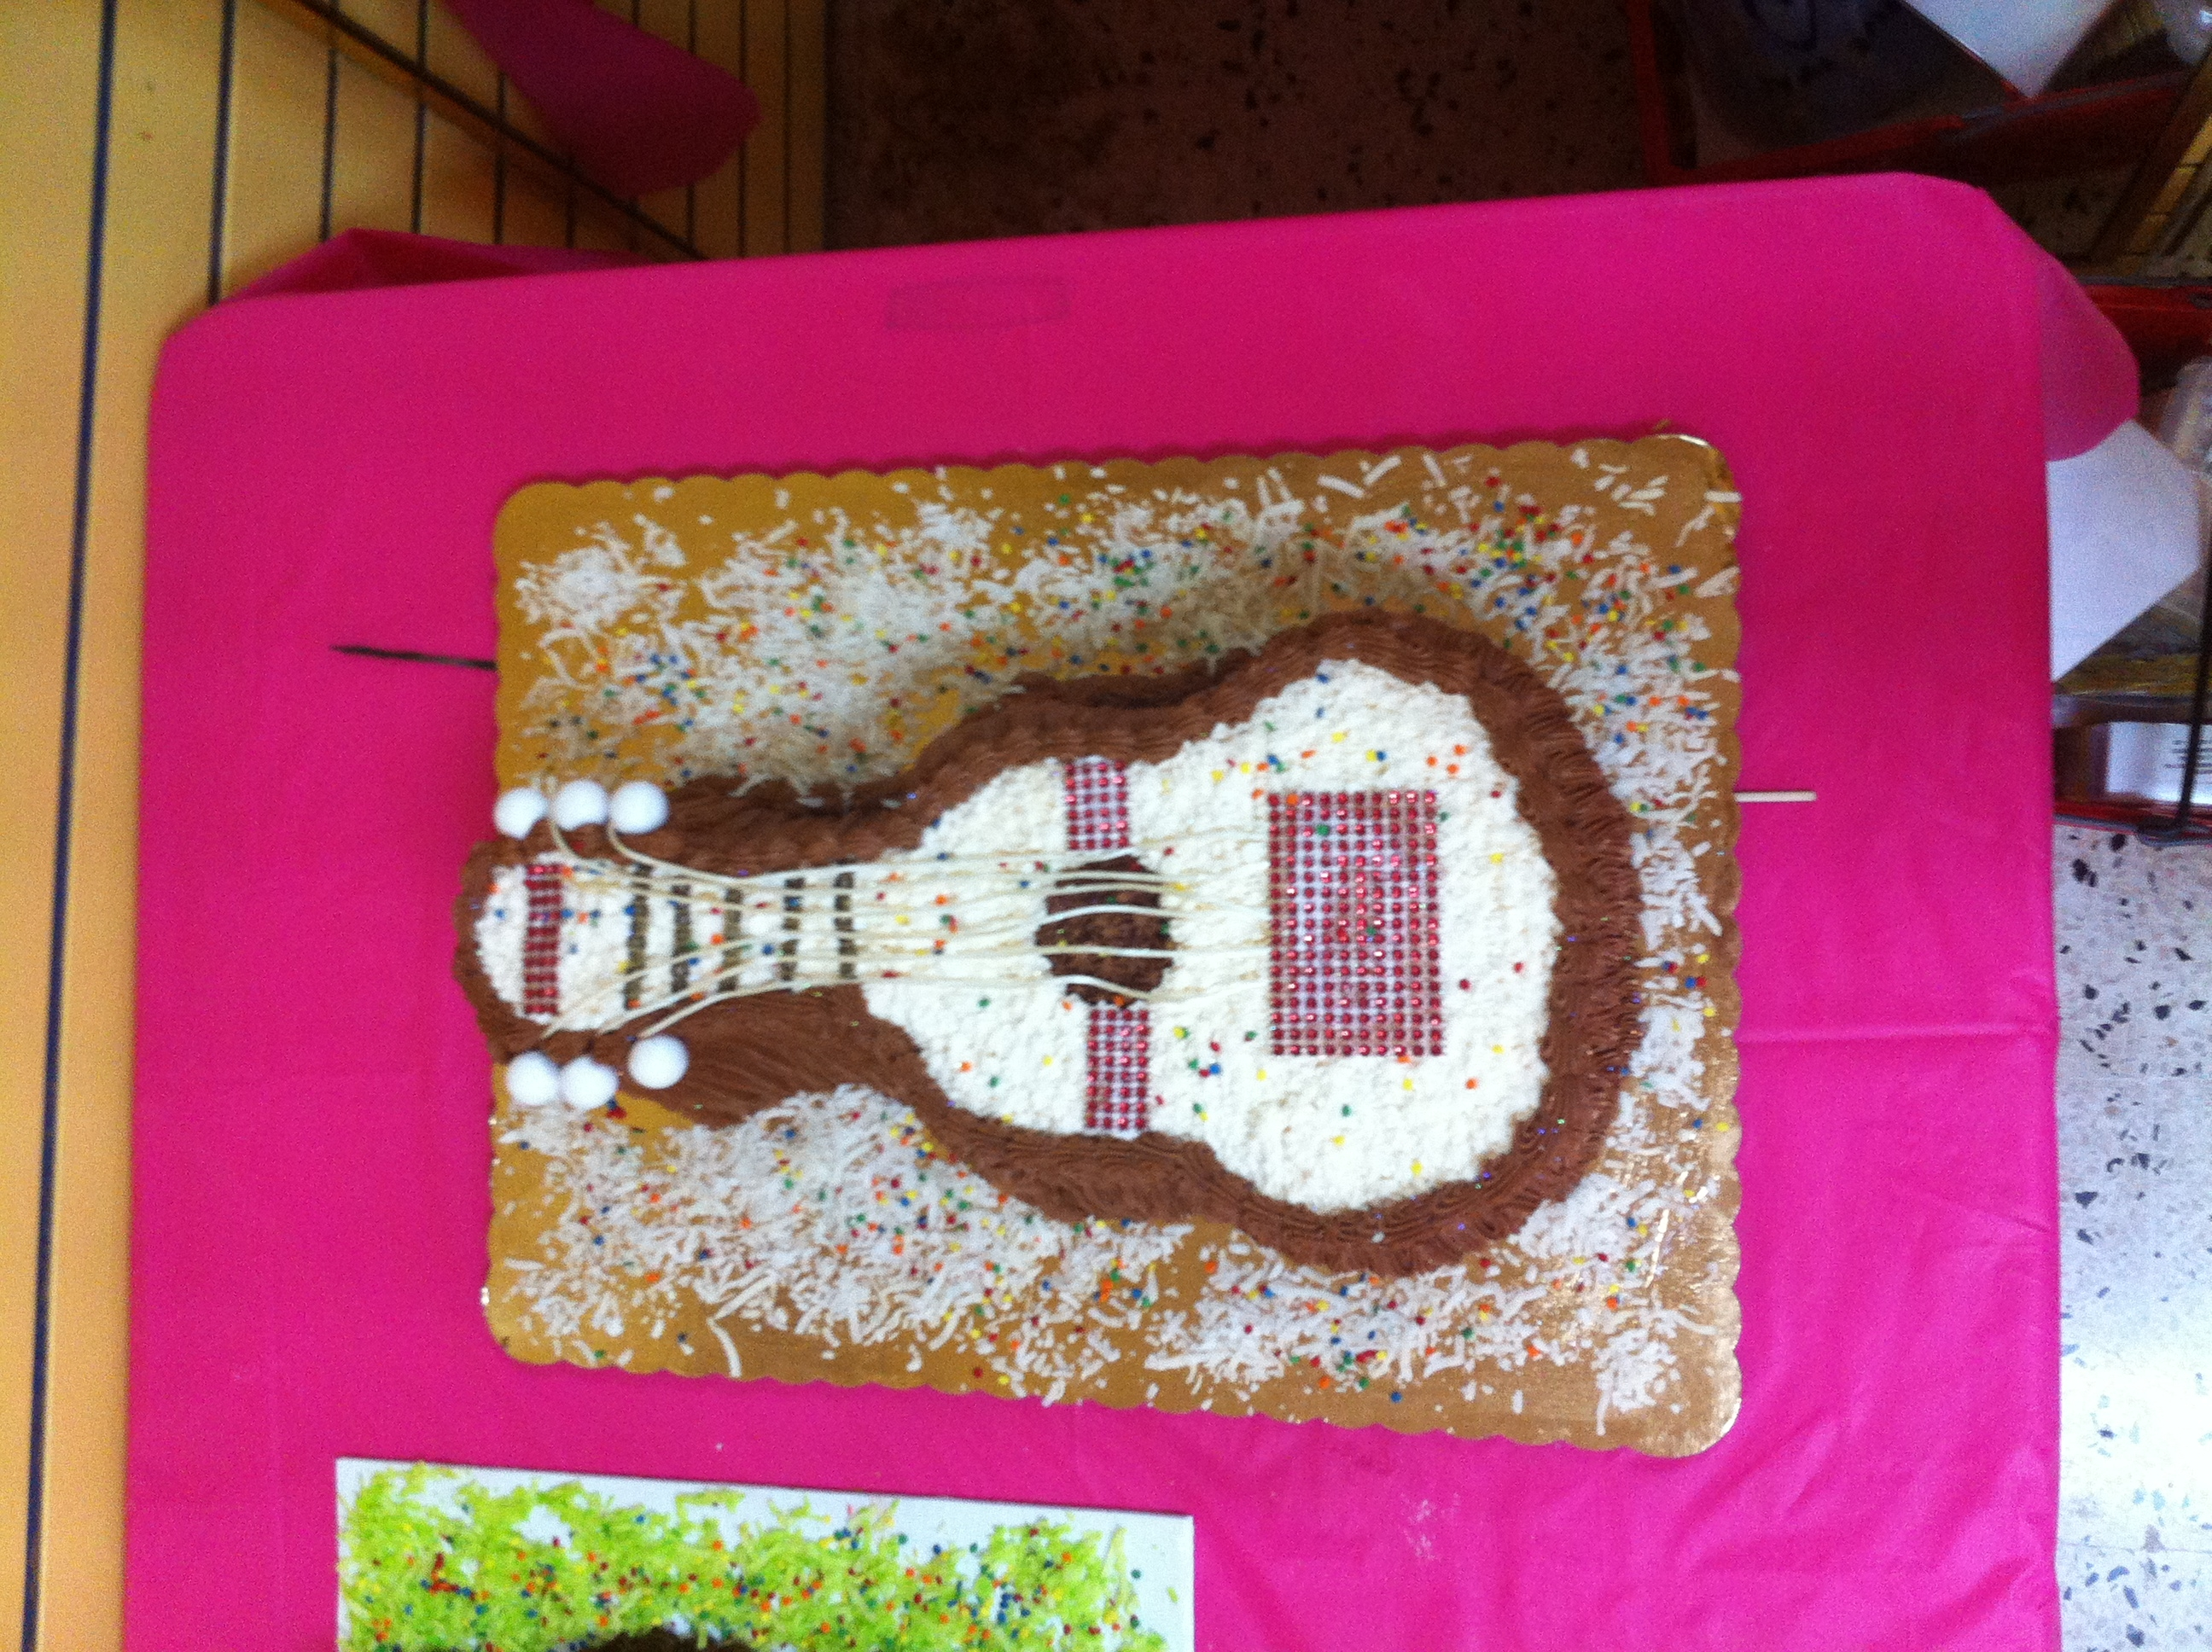 "This is a cake I did for my pastry design class. It is a 5"" silhouette of a music guitar. I decorated it with string and foam balls at the tips to make it look more realistic. It is a simple butter cake with royal icing."